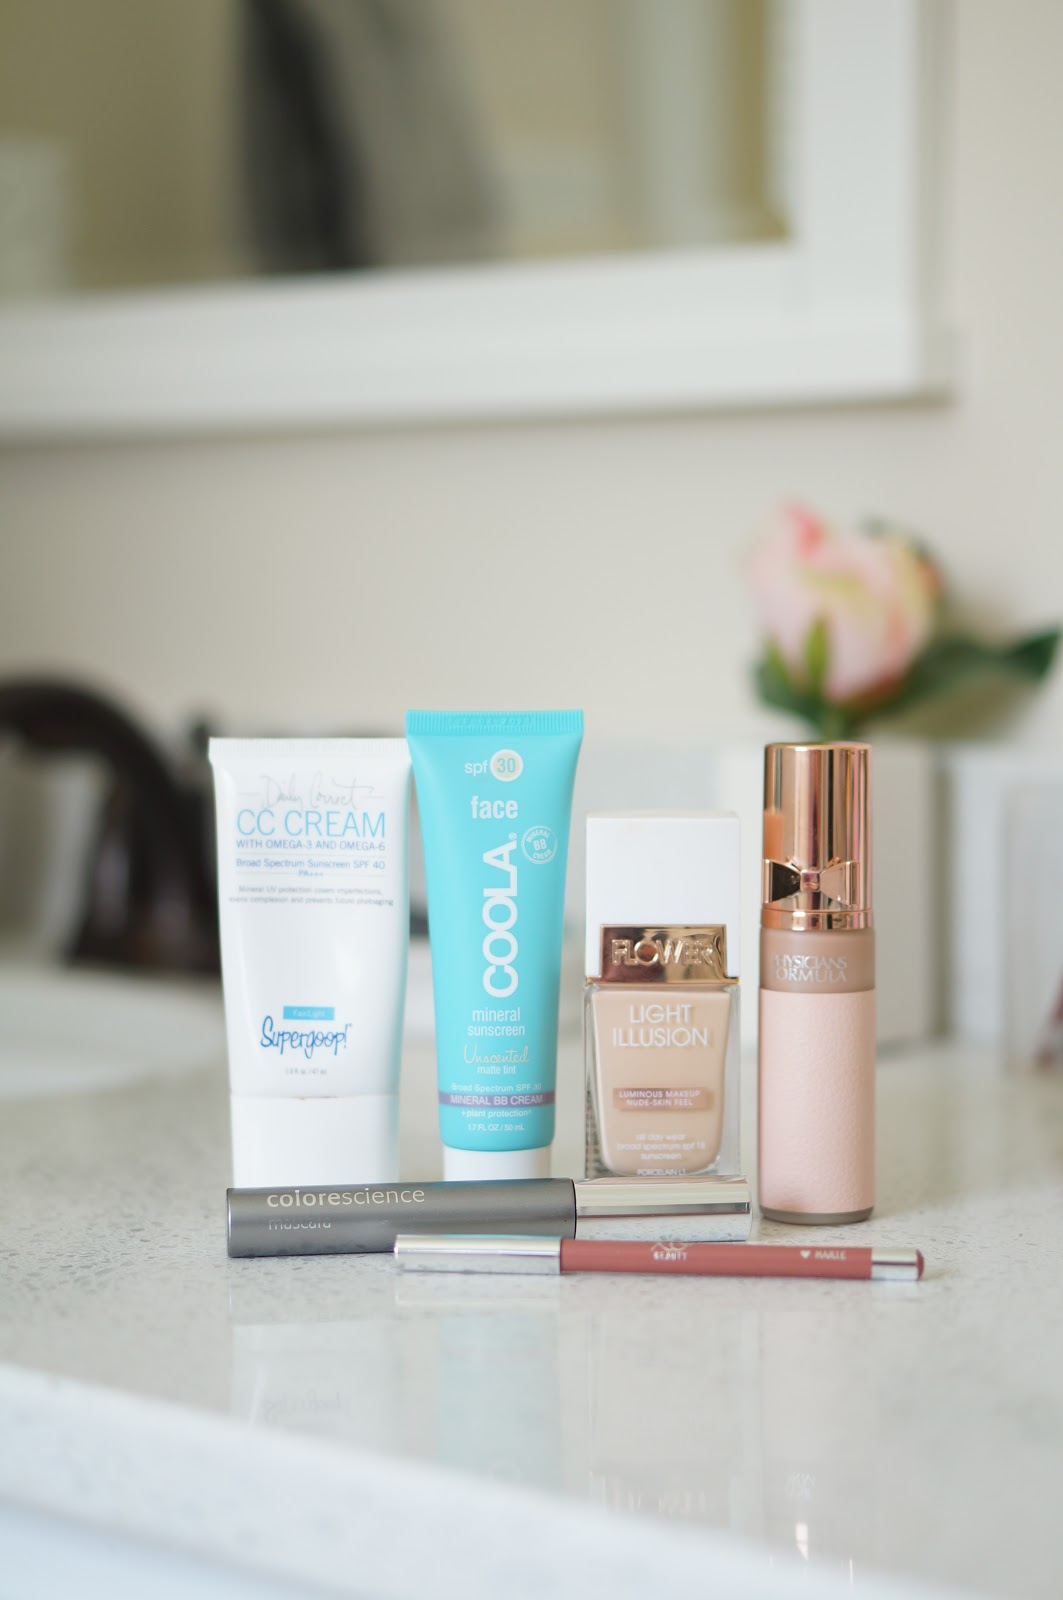 Popular North Carolina style blogger Rebecca Lately shares her summer essentials. Click here to read what she's been loving this season!